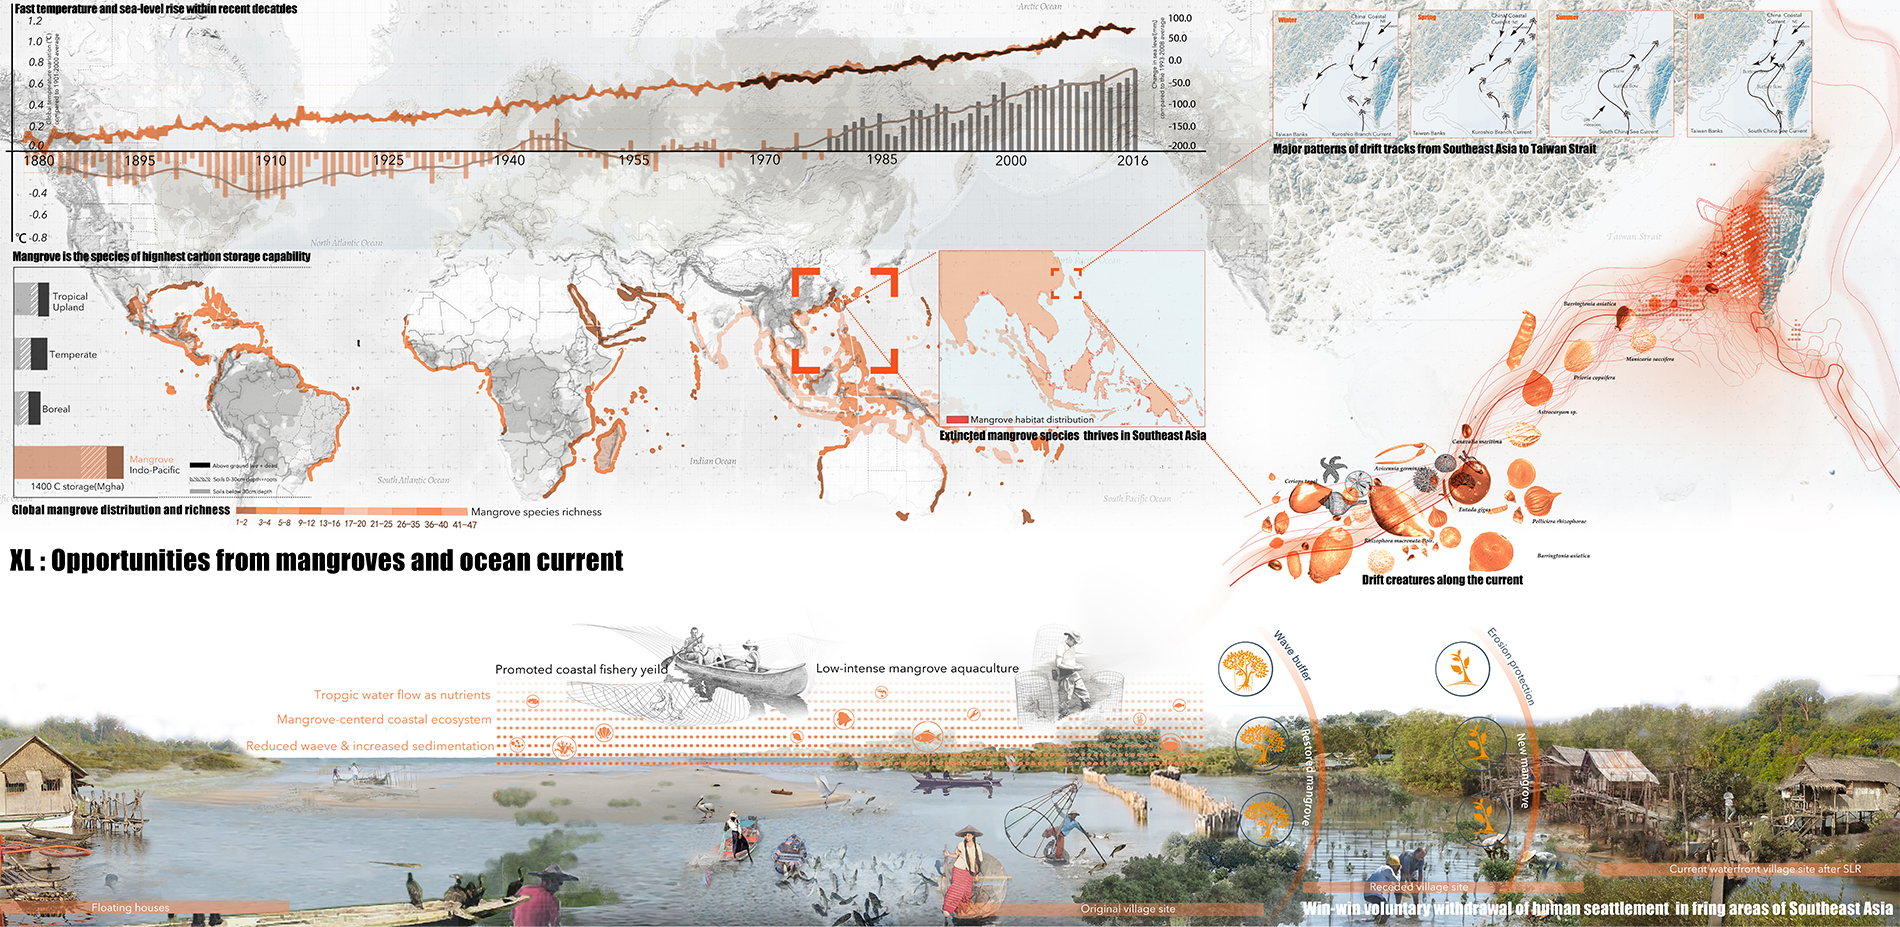 XL: Opportunities from Mangrove and Ocean Current